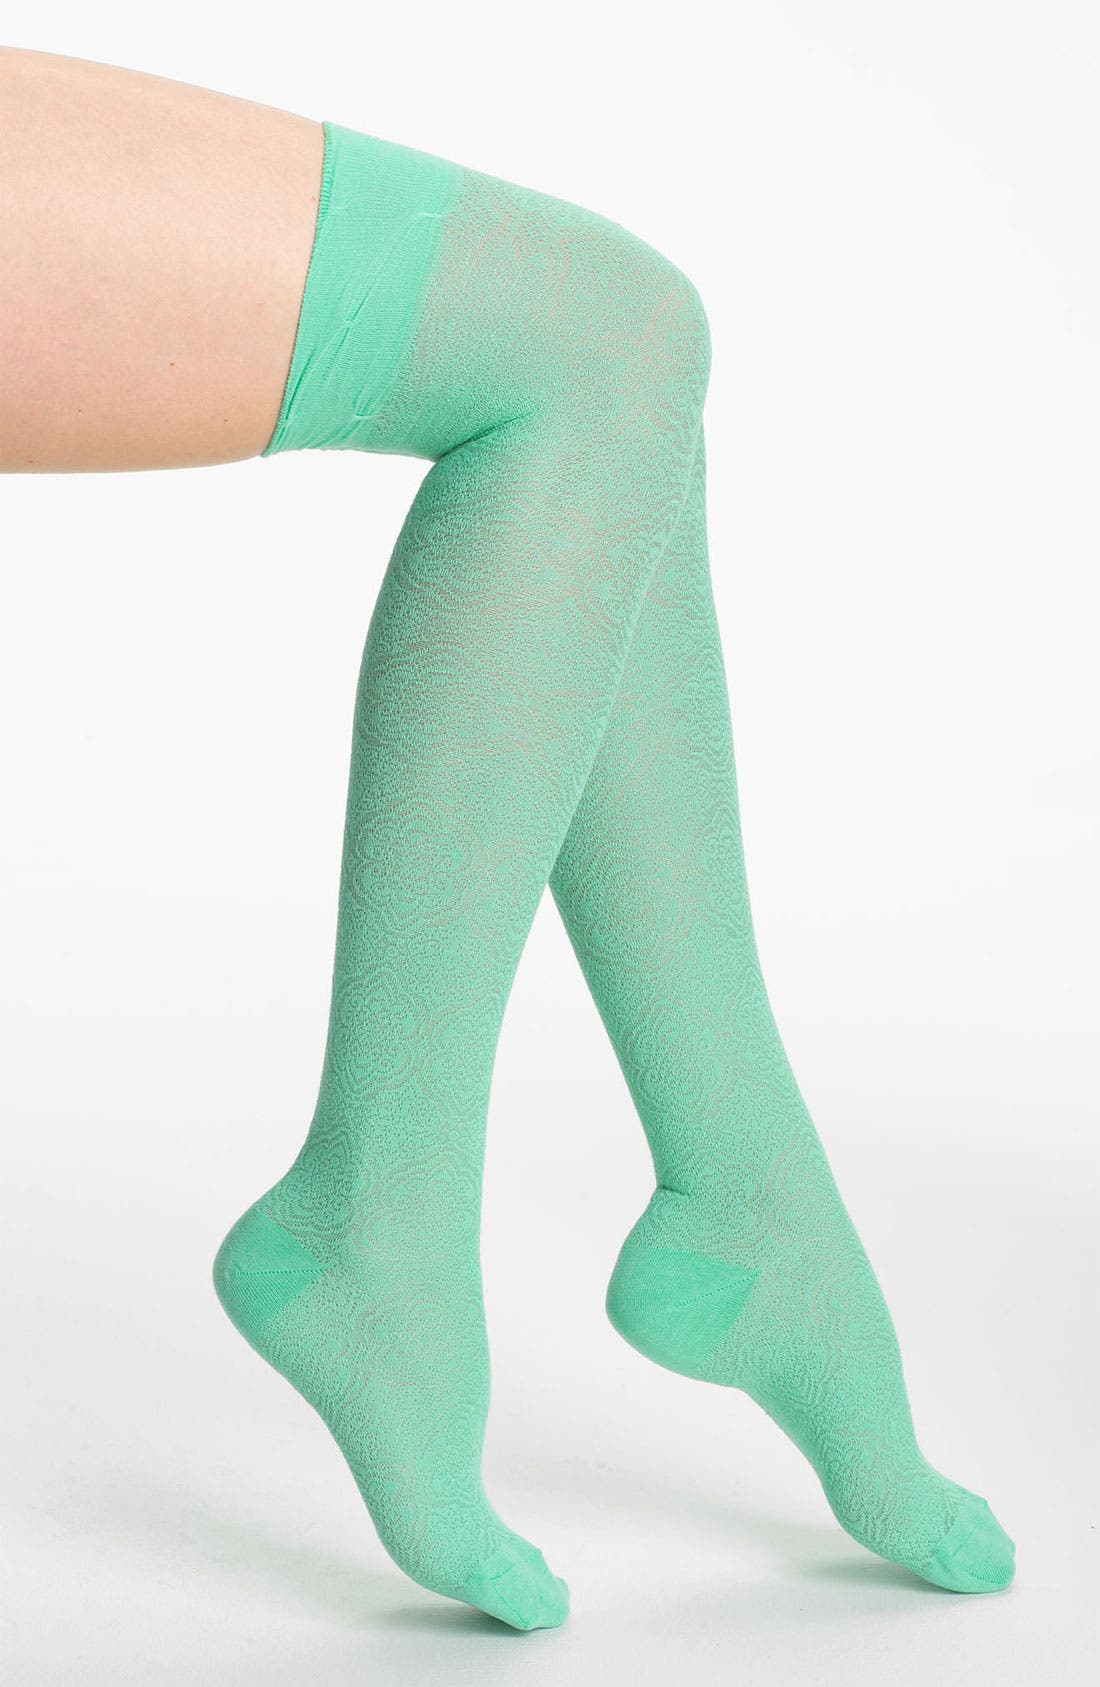 Main Image - Nordstrom 'Pattern Play' Over the Knee Socks